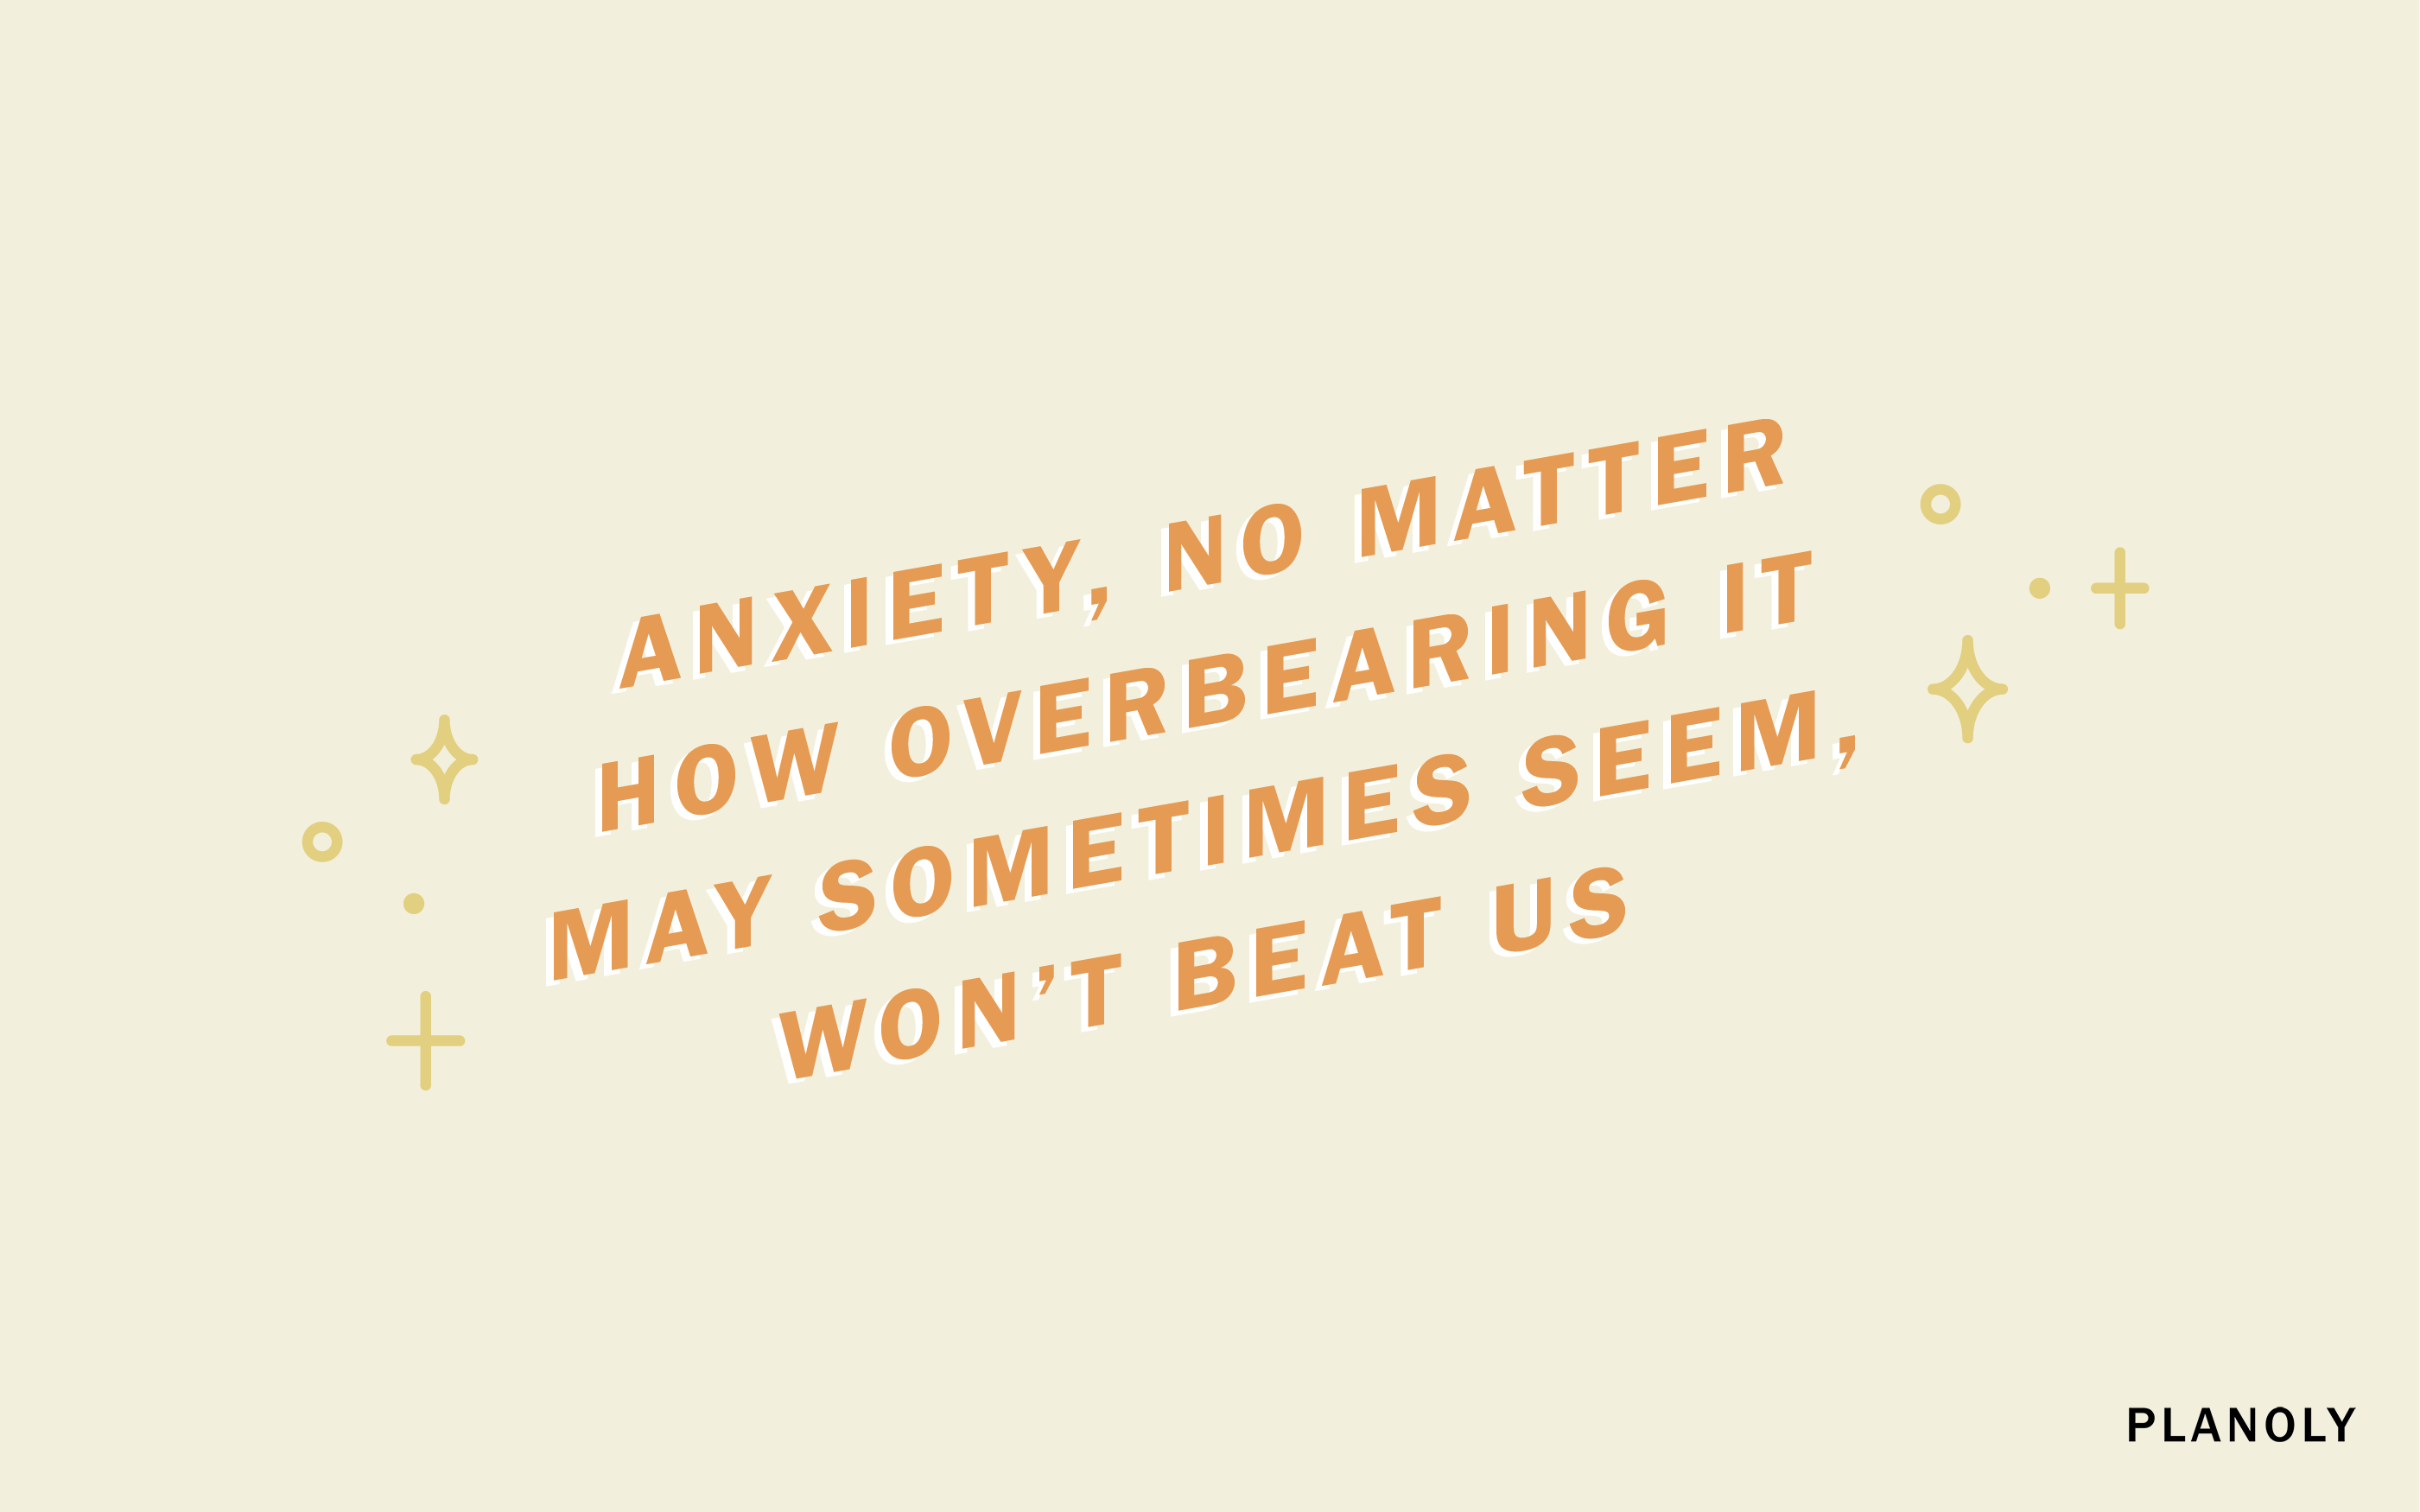 Coping with Anxiety in the Time of Social Distancing